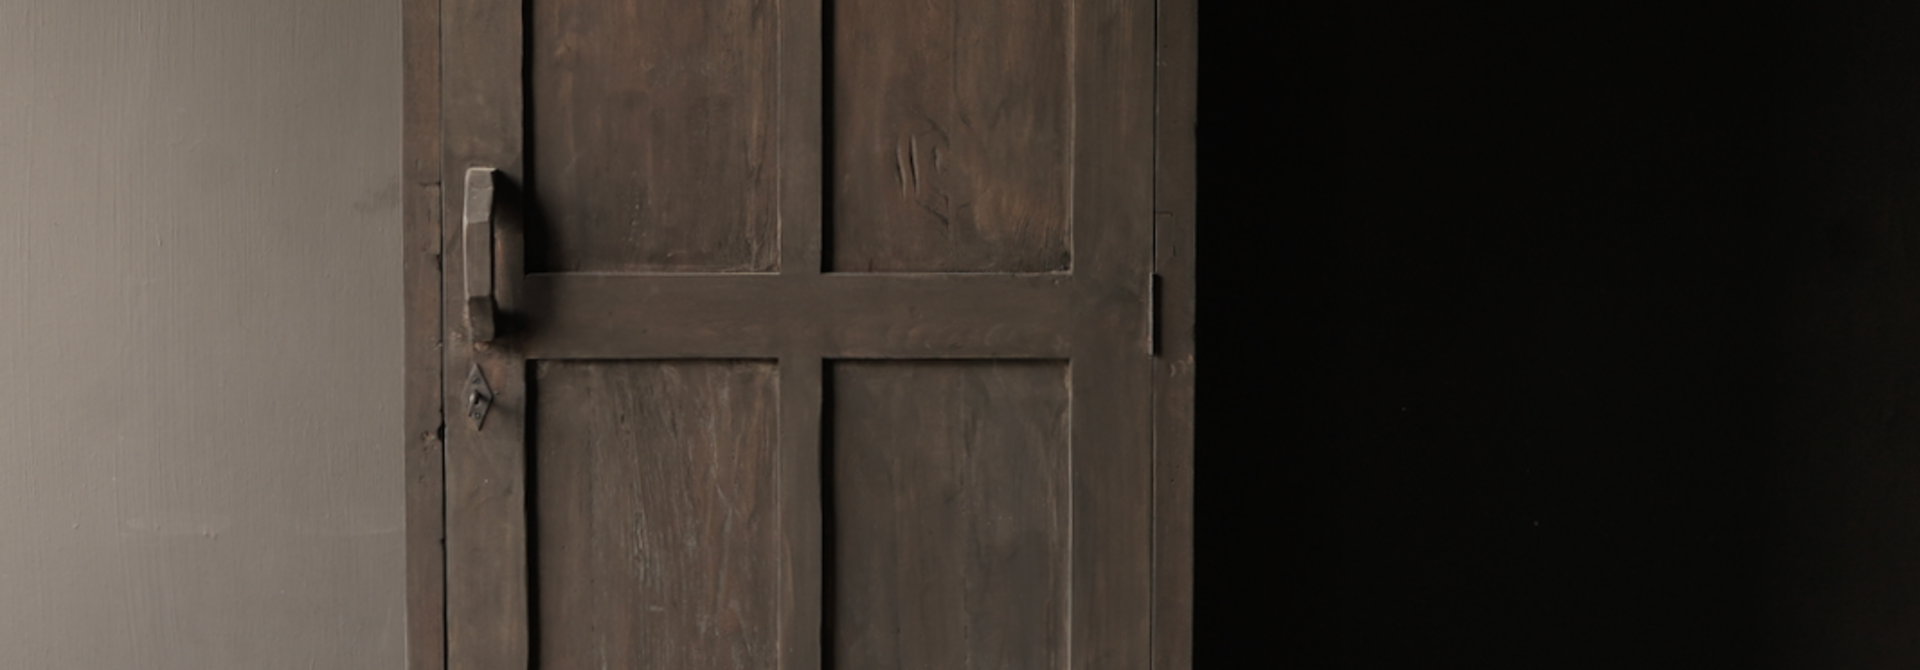 Sturdy one-door wardrobe from old wood with a drawer